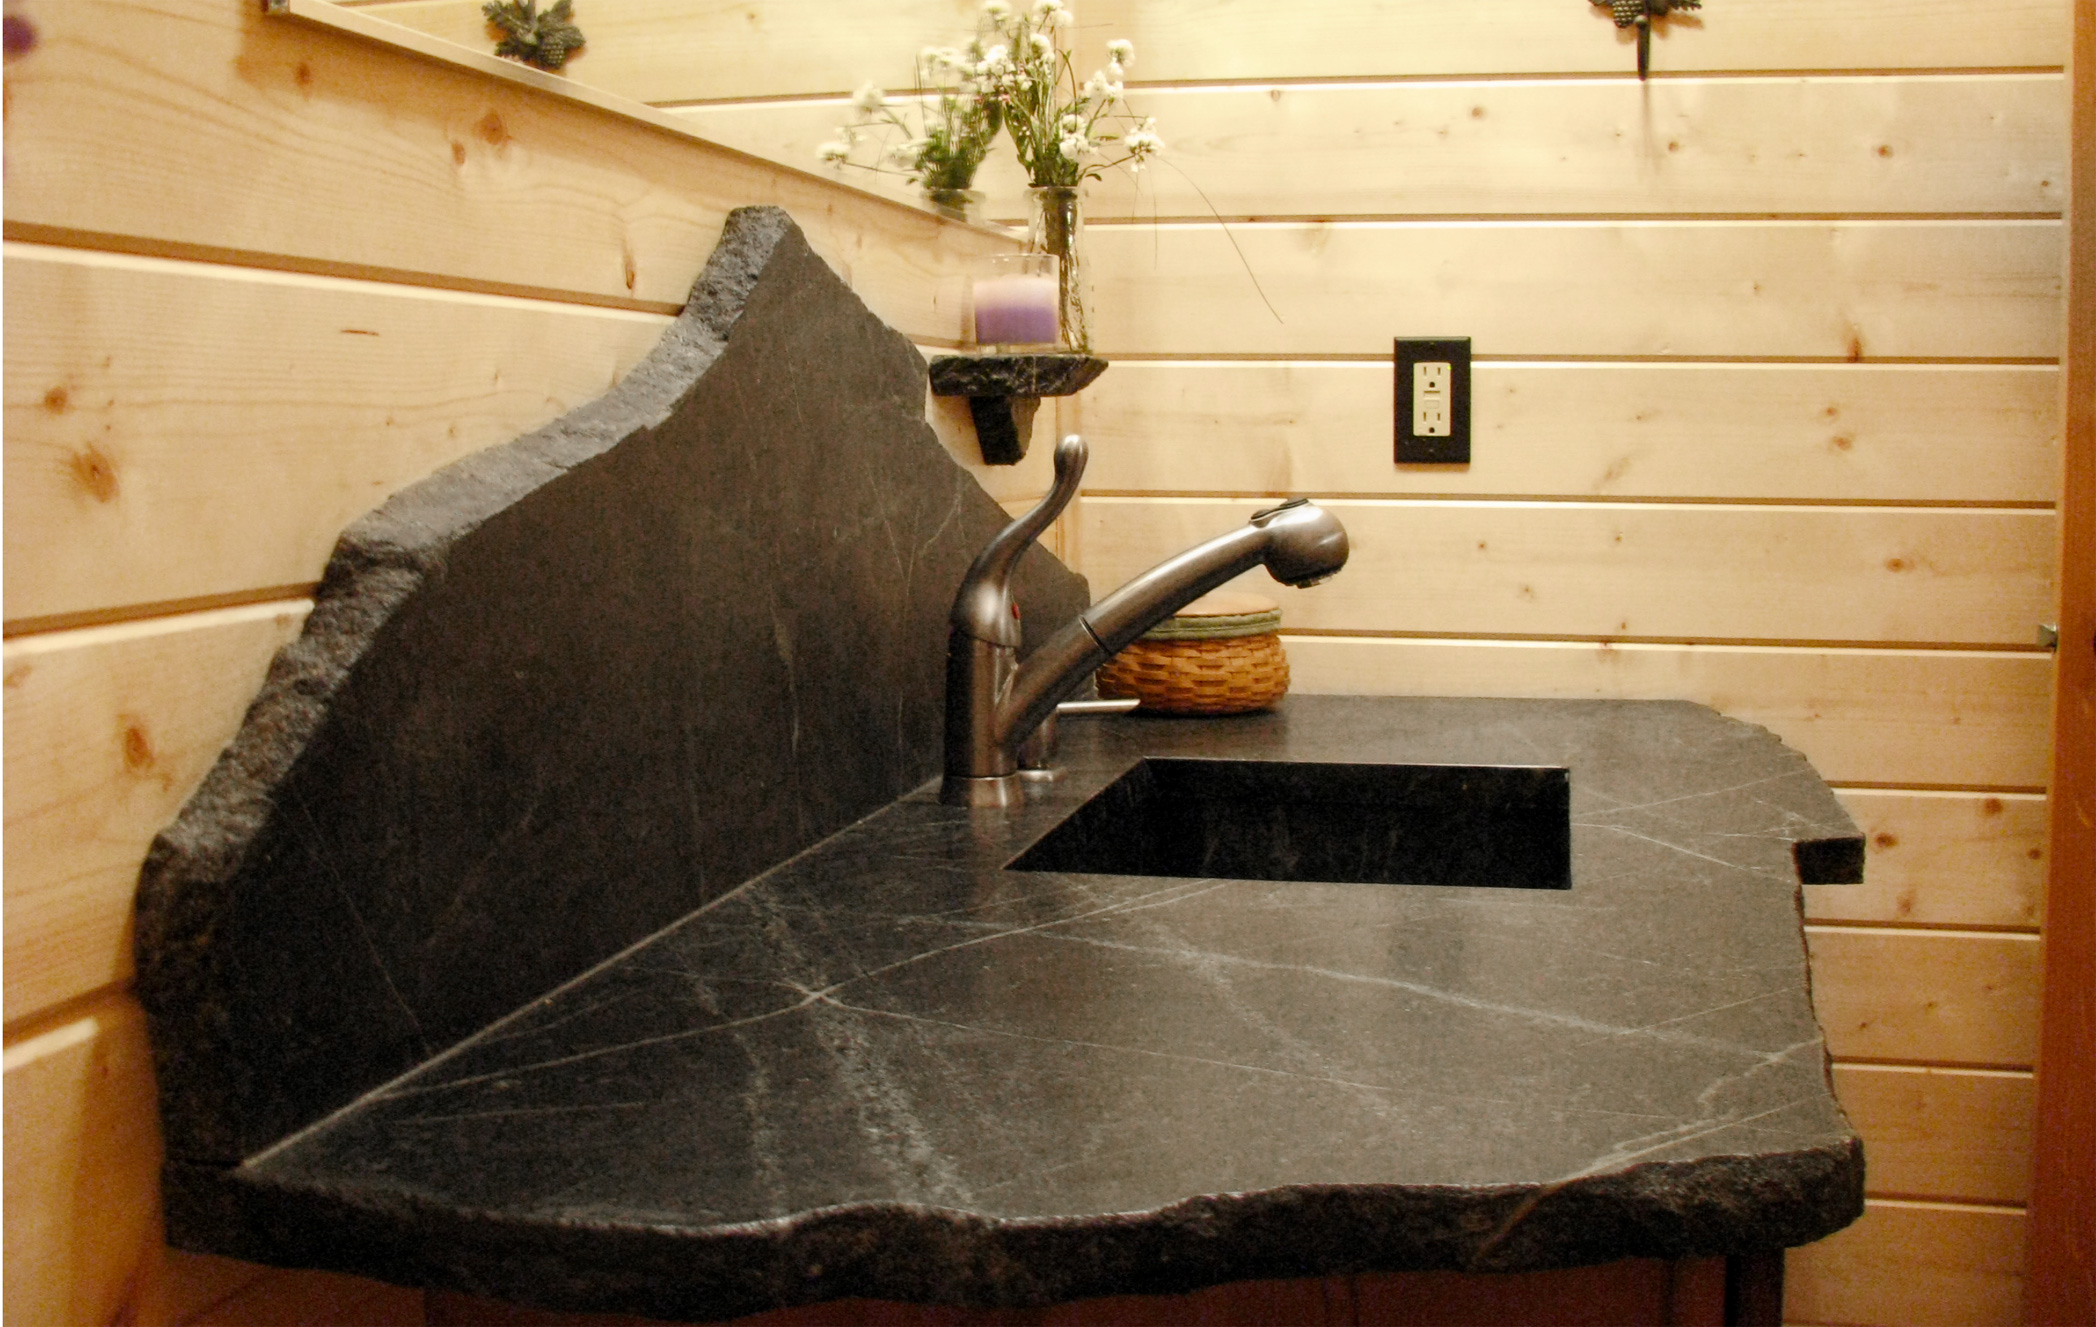 Top 15 Kitchen Countertops Costs And Pros Cons In 2021 Home Remodeling Costs Guide